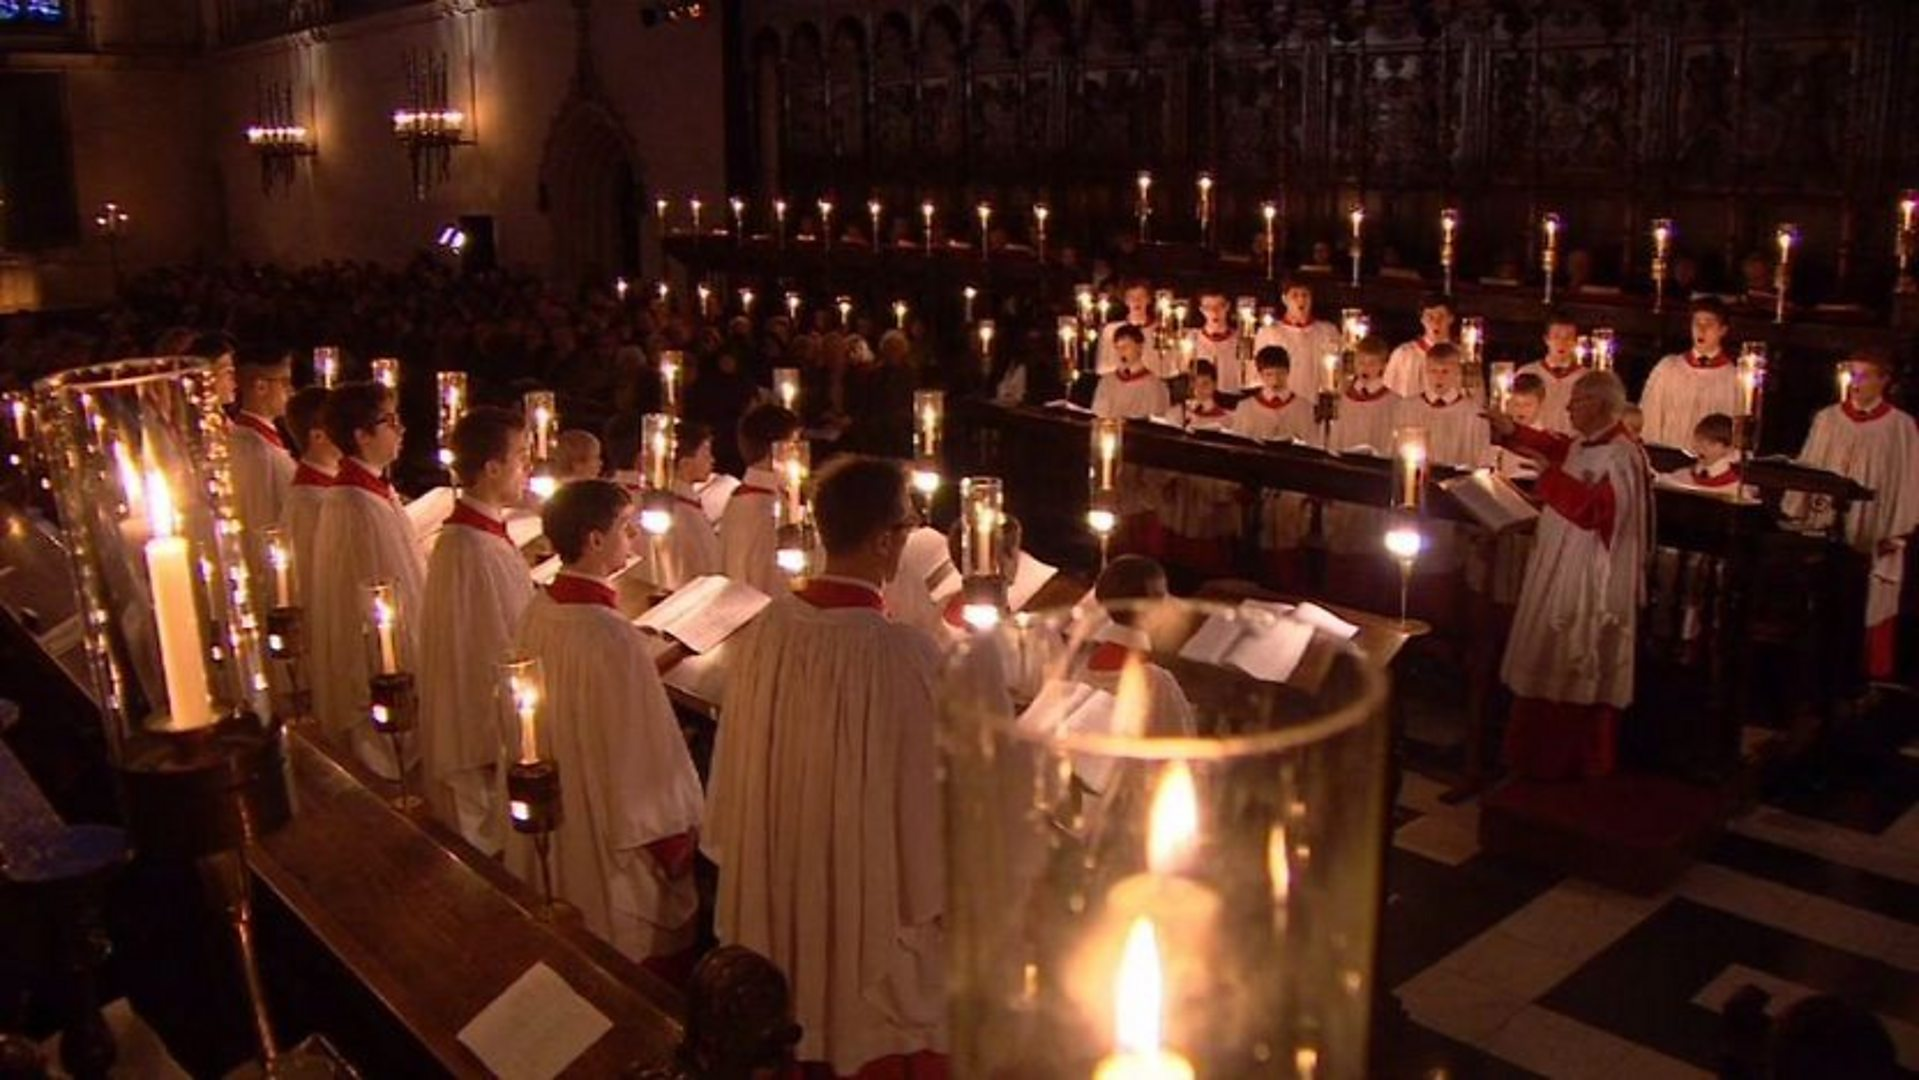 BBC Two - Carols from King's, 24/12/2012